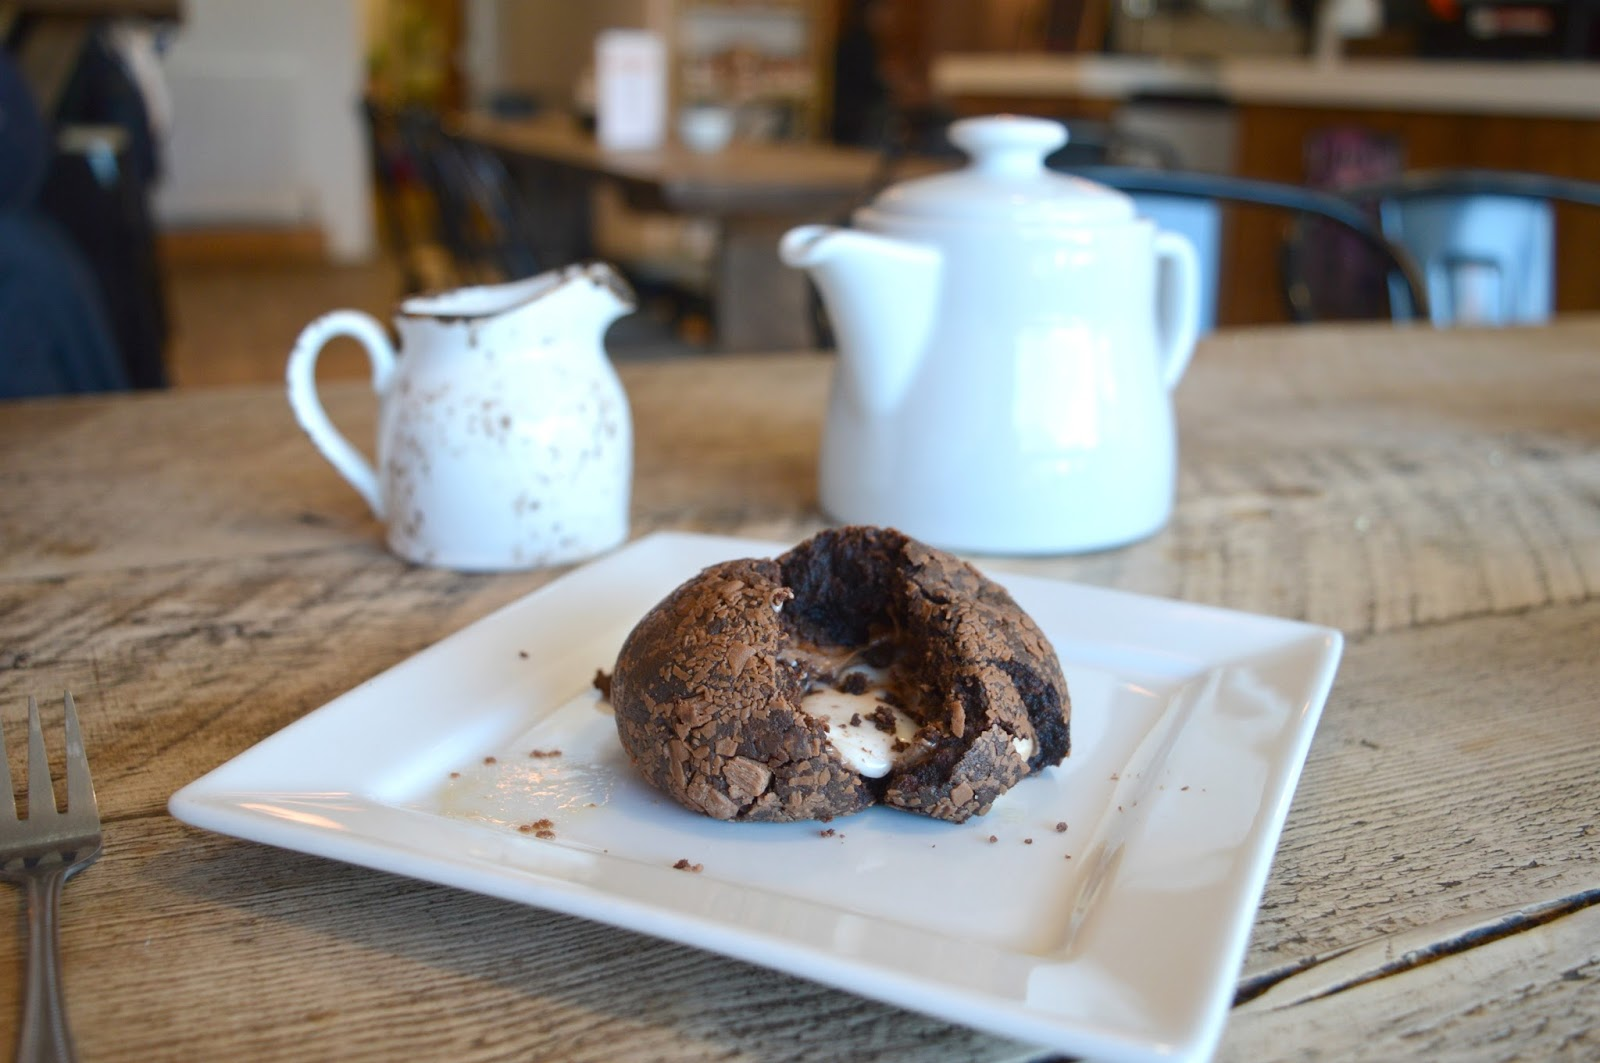 The Best Easter Cakes and Treats in Newcastle - The Brownie Bar